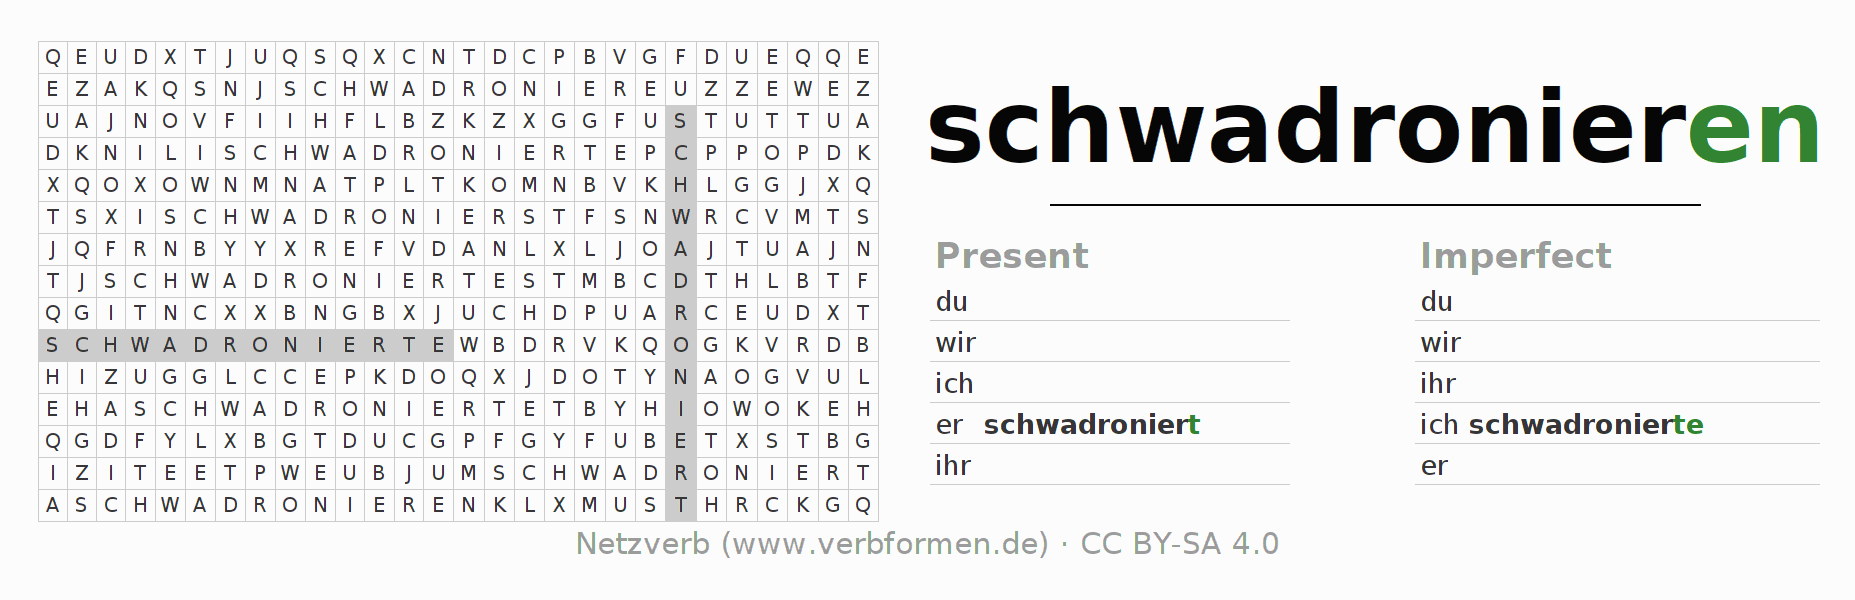 Word search puzzle for the conjugation of the verb schwadronieren